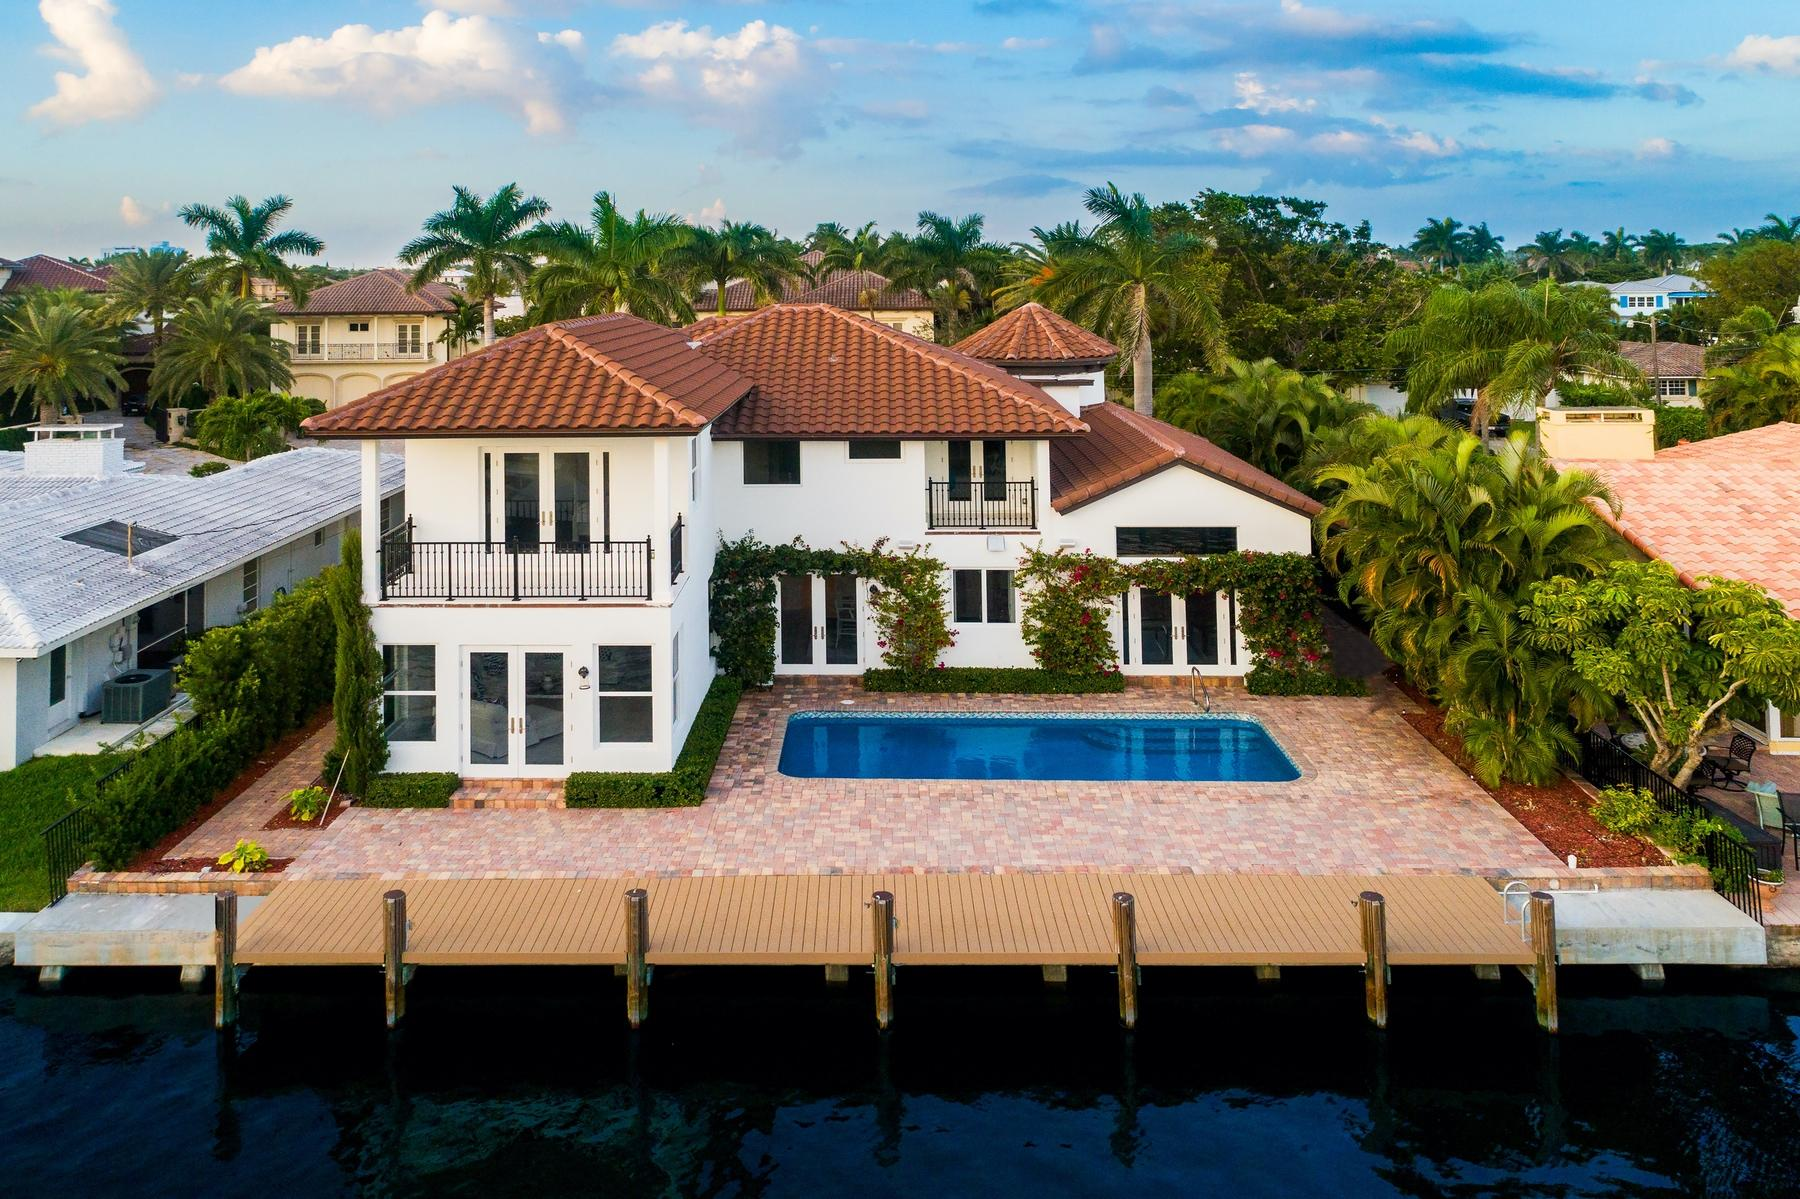 1010 Lewis Cove Road  Delray Beach, FL 33483